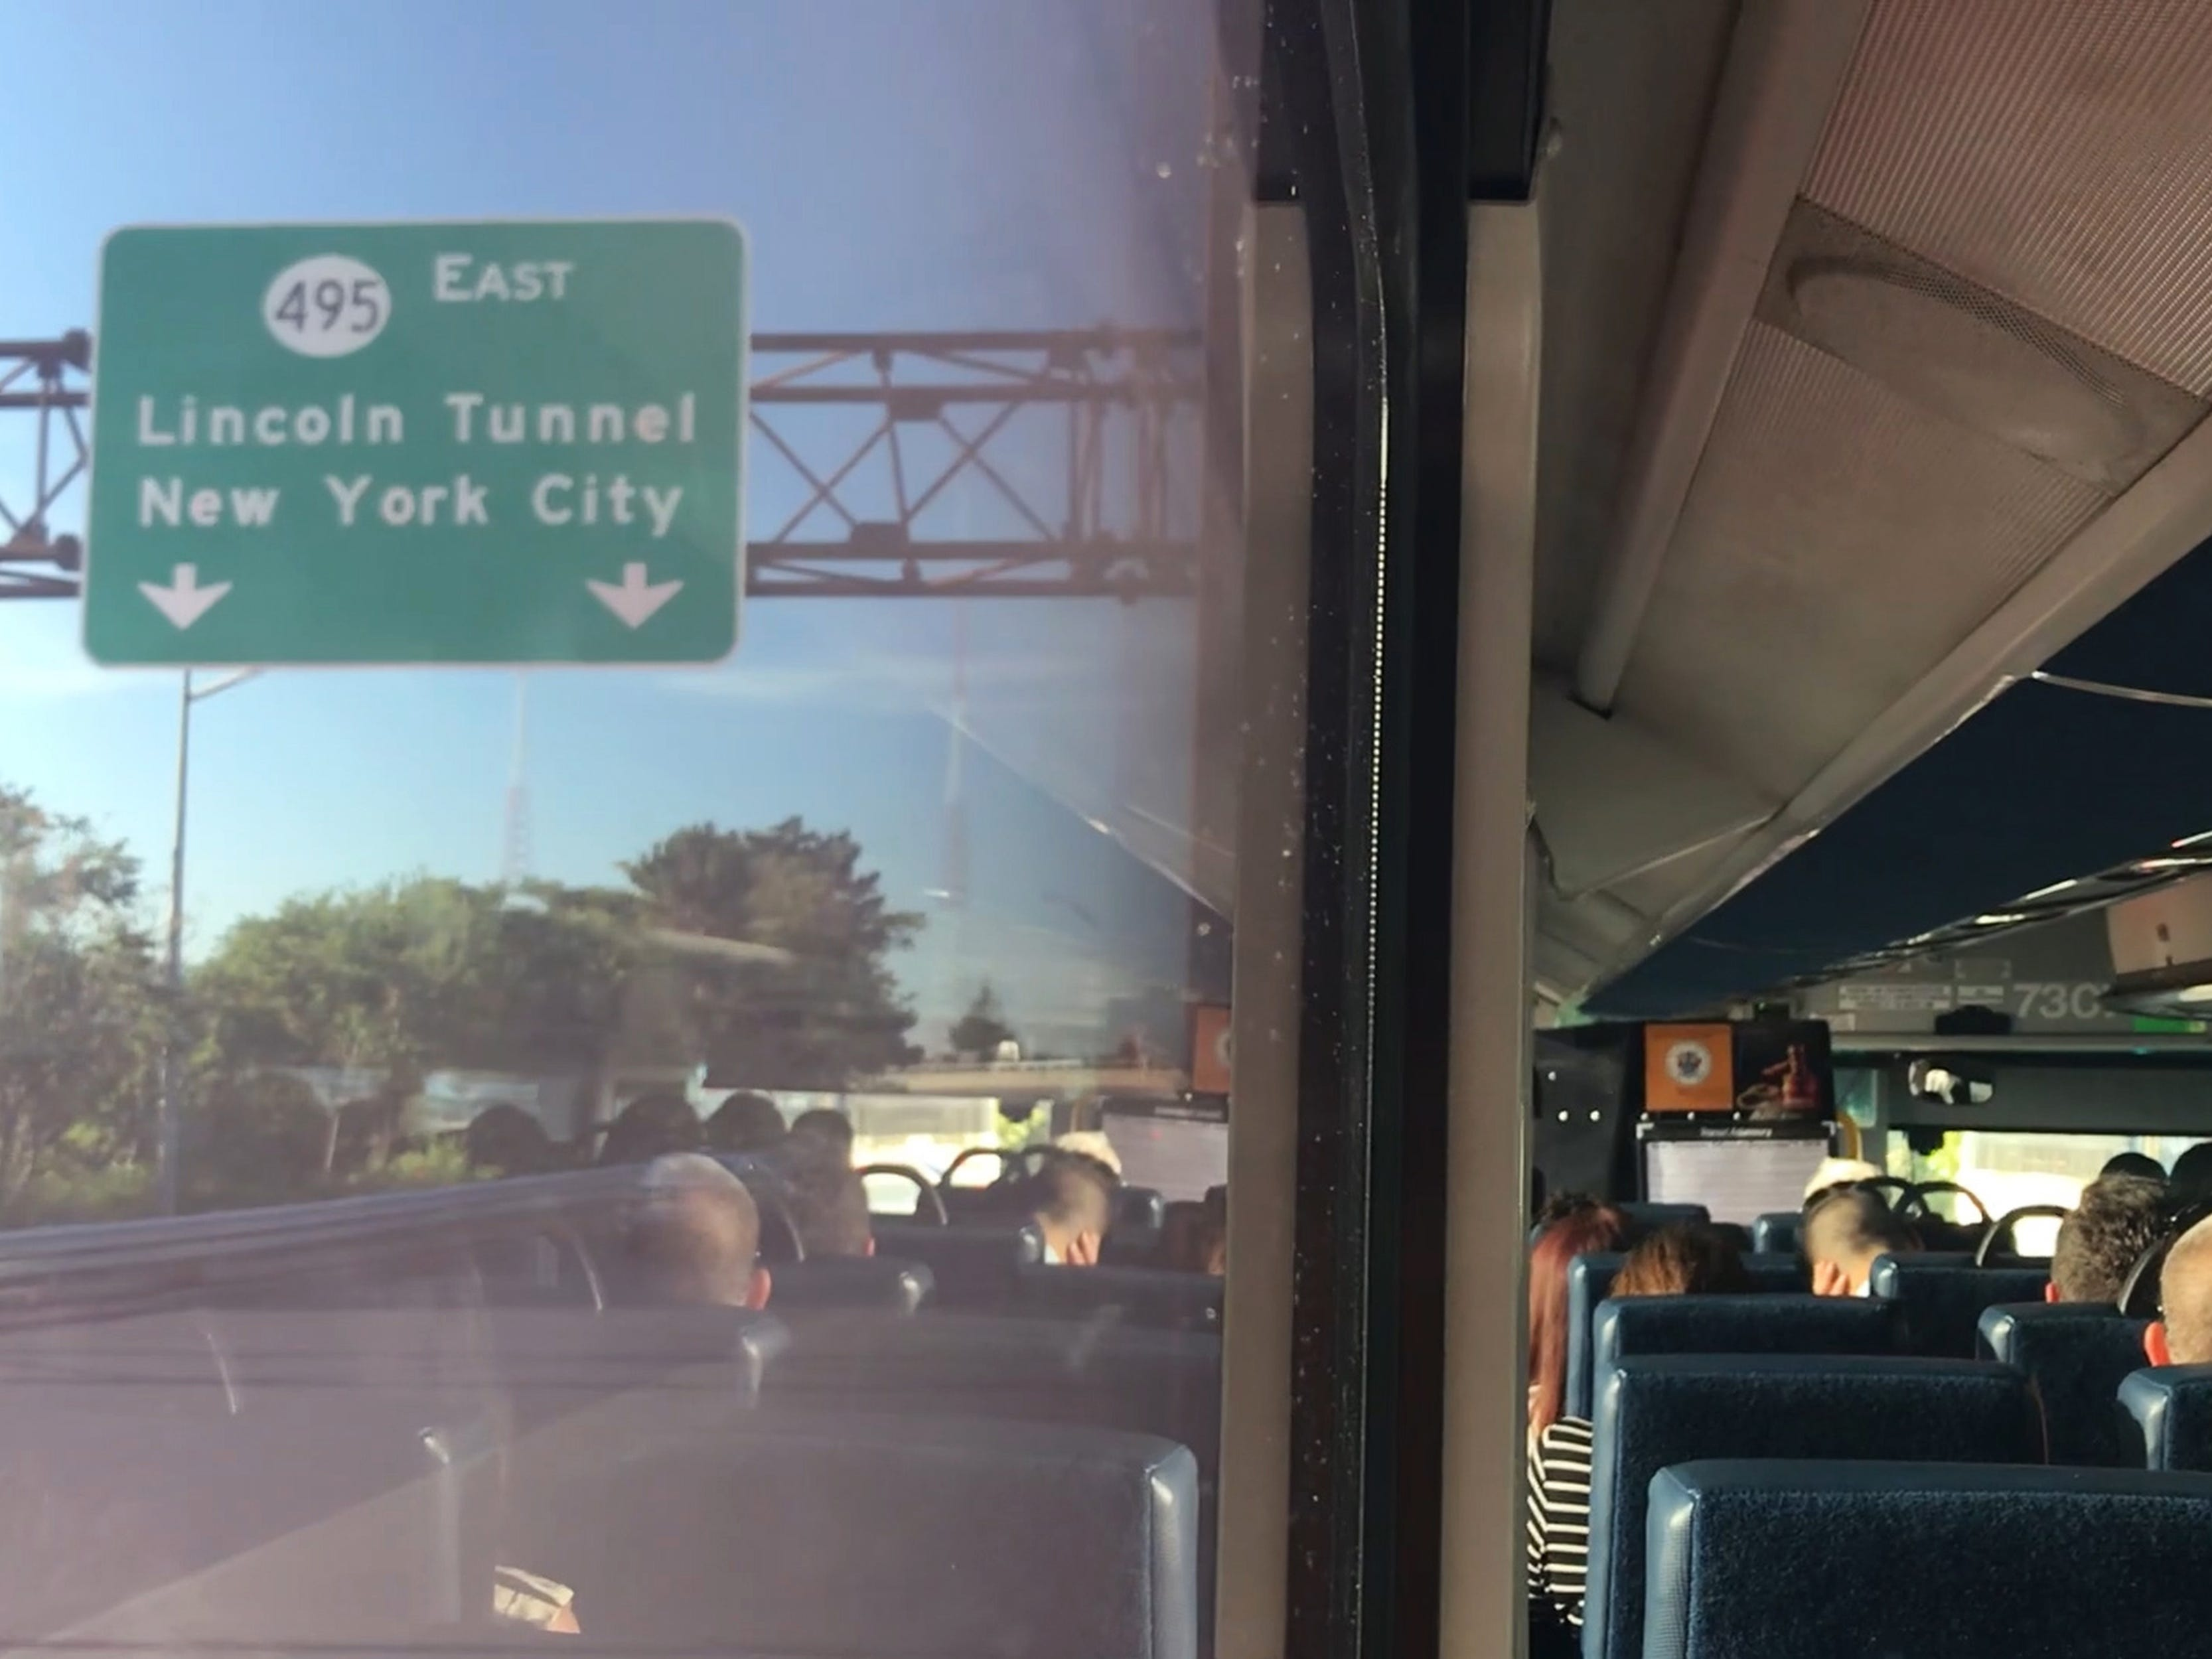 A NJ Transit Bus approaches the Lincoln Tunnel after leaving the Vince Lombardi Park and Ride in Ridgefield on Tuesday September 4, 2018.